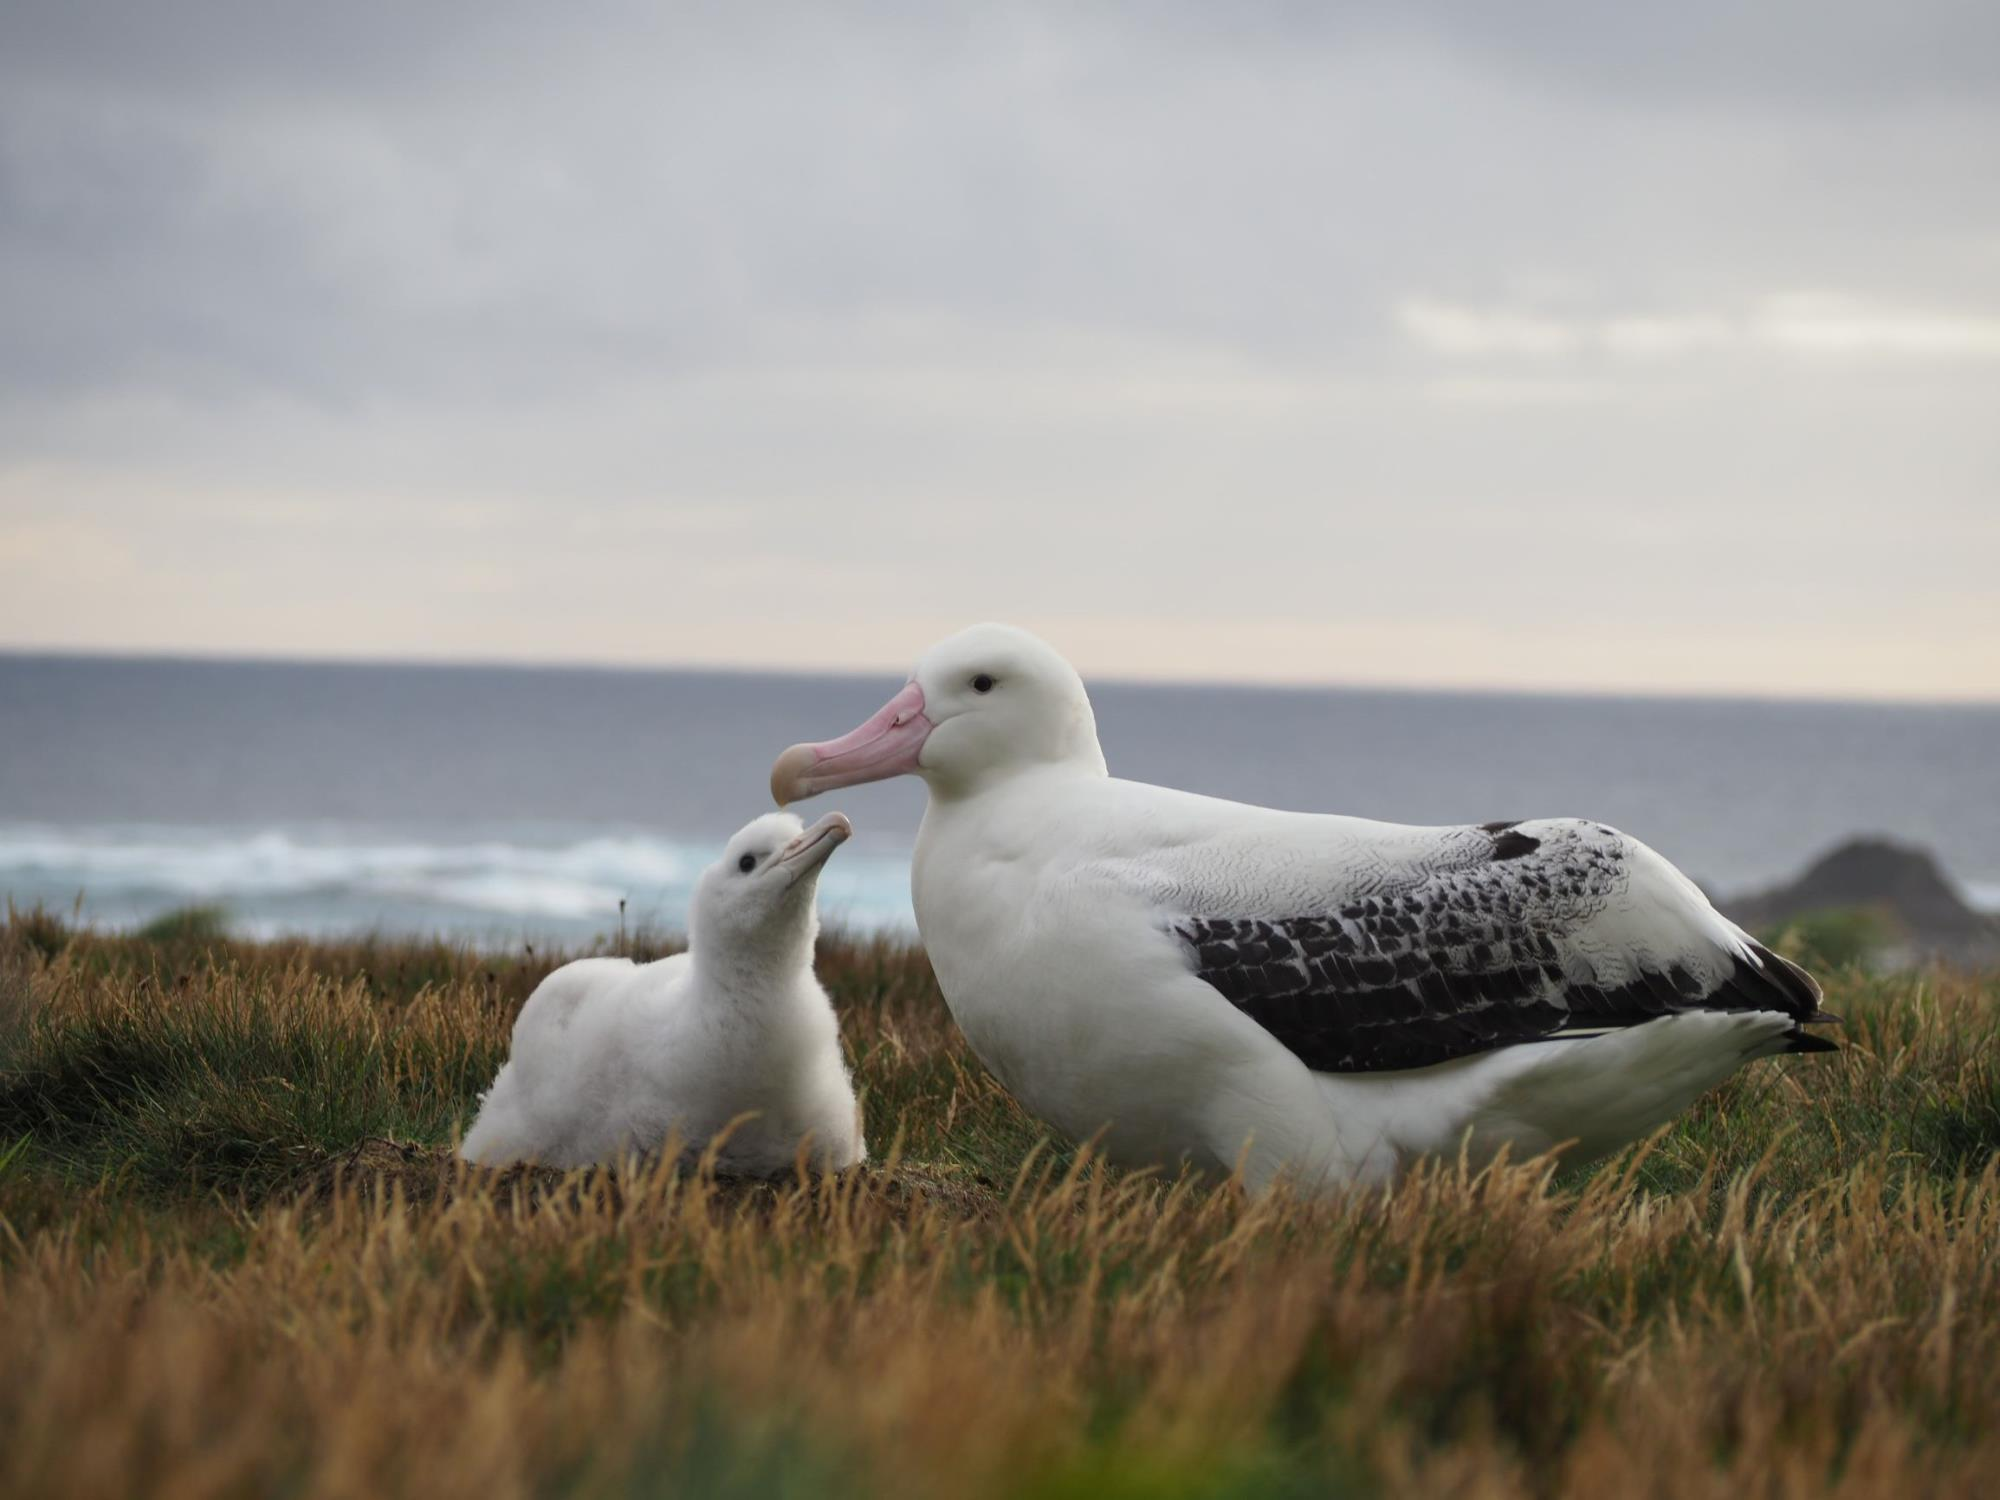 A Wandering albatross dad with his chick.